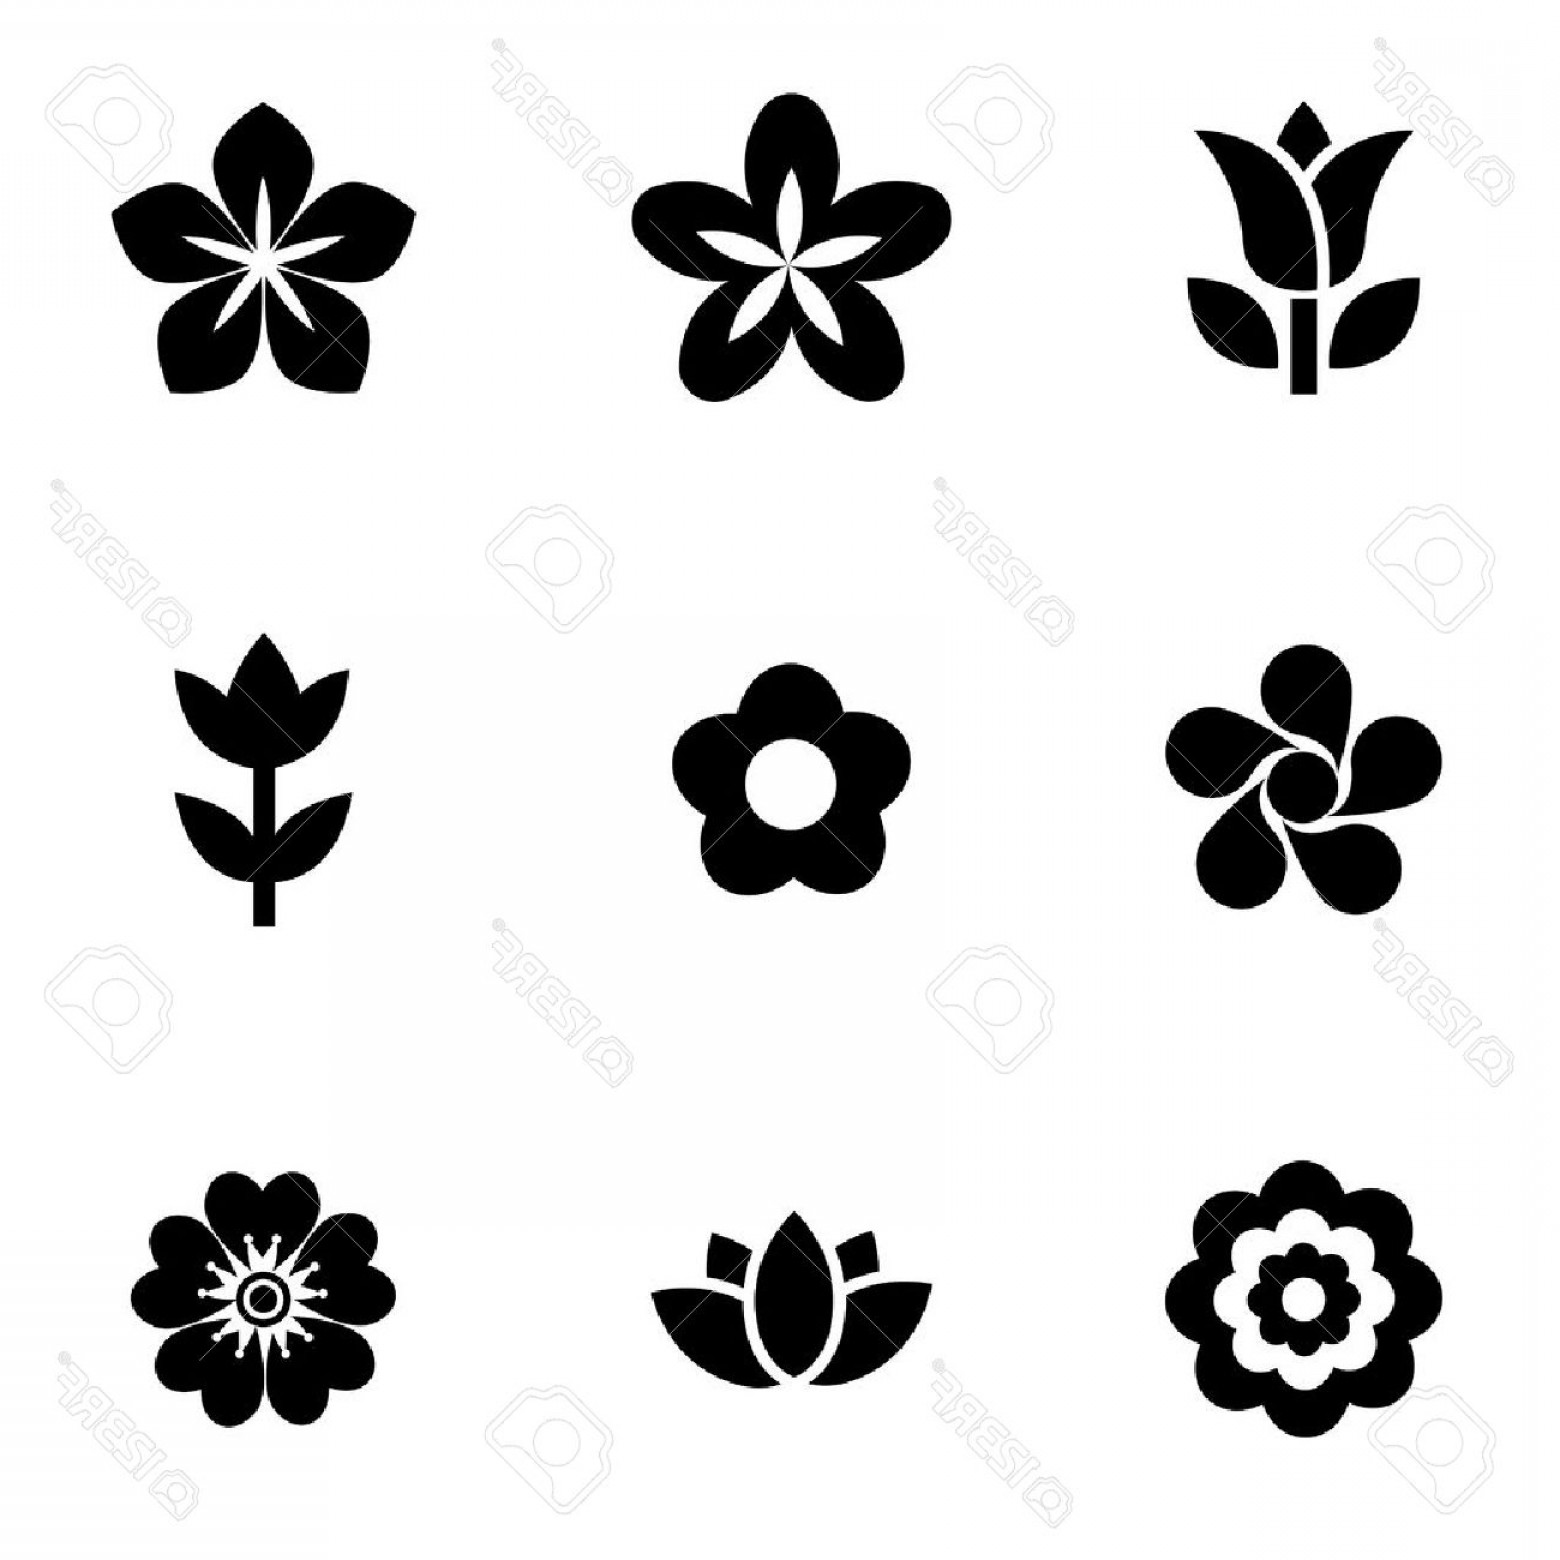 Icon Of Flower Vectors: Photostock Vector Vector Black Flowers Icon Set Flowers Icon Object Flowers Icon Picture Flowers Icon Image Stock Vect